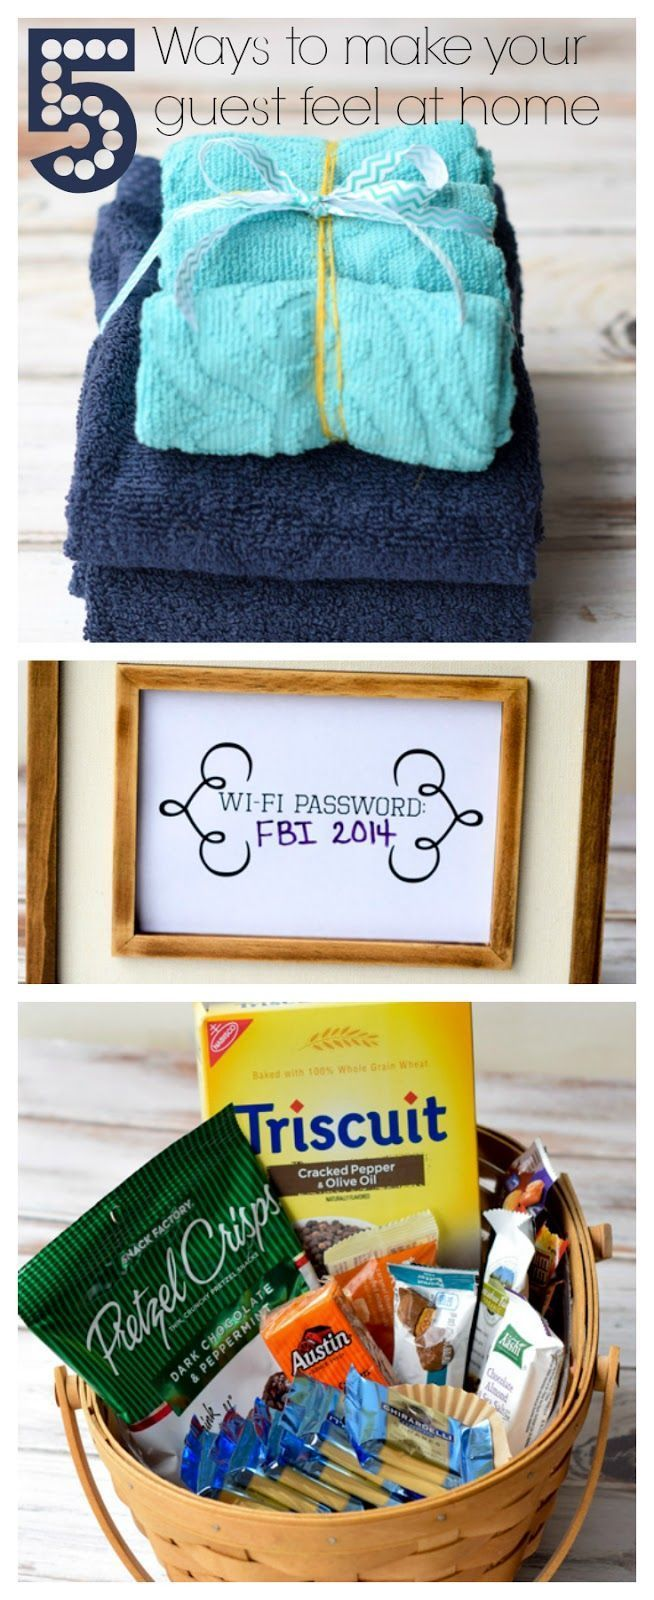 A list of 5 tips to make an overnight guest feel at home. Includes fresh towels and toiletries, snacks, coffee and more! Learn about getting your house ready fo